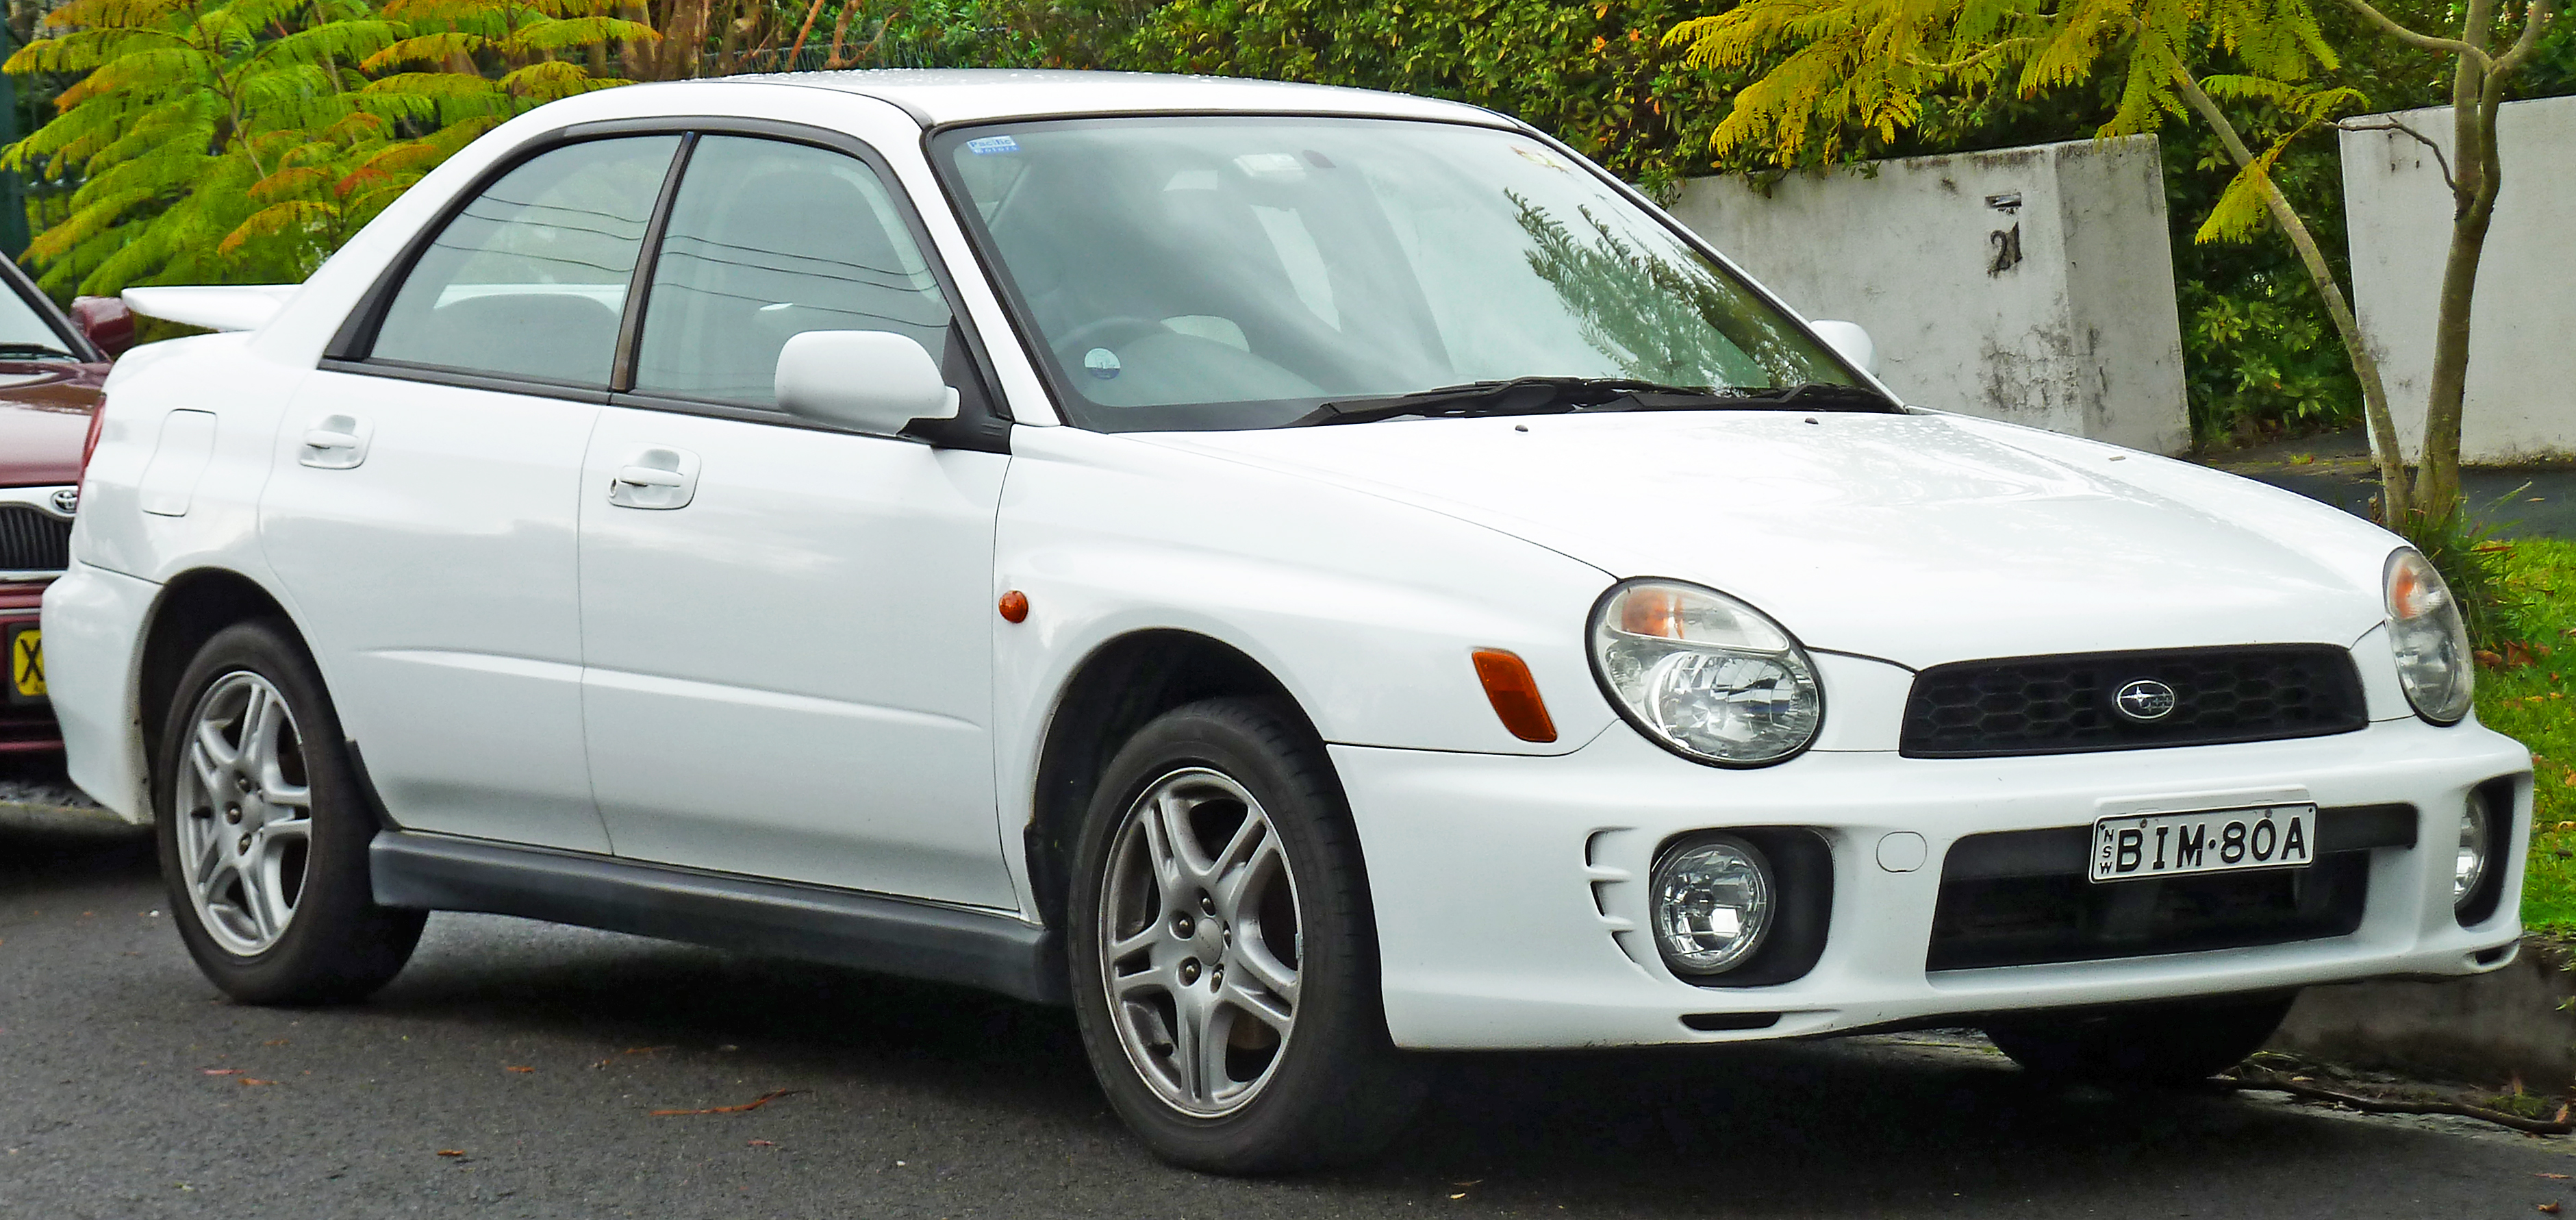 4e6c32e3401 Subaru Impreza (second generation) - Wikipedia